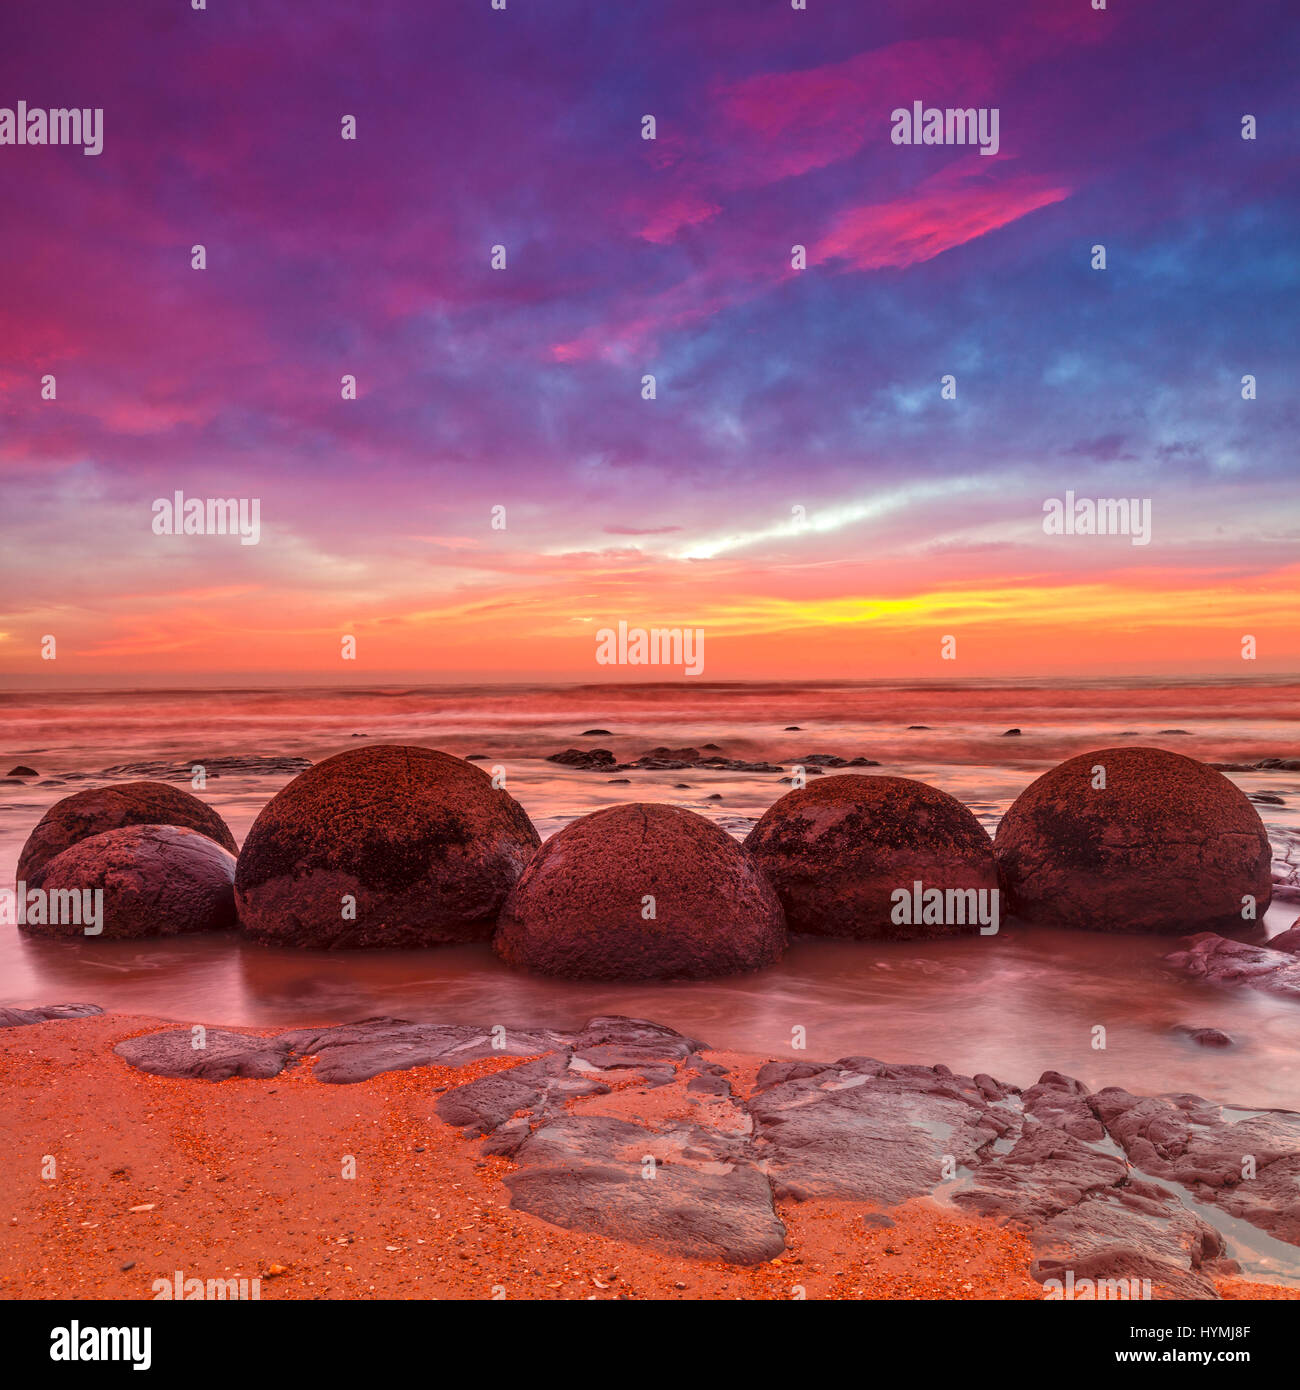 Moeraki Boulders, Otago, New Zealand - dramatic light at Moeraki Boulders, Otago, New Zealand. - Stock Image